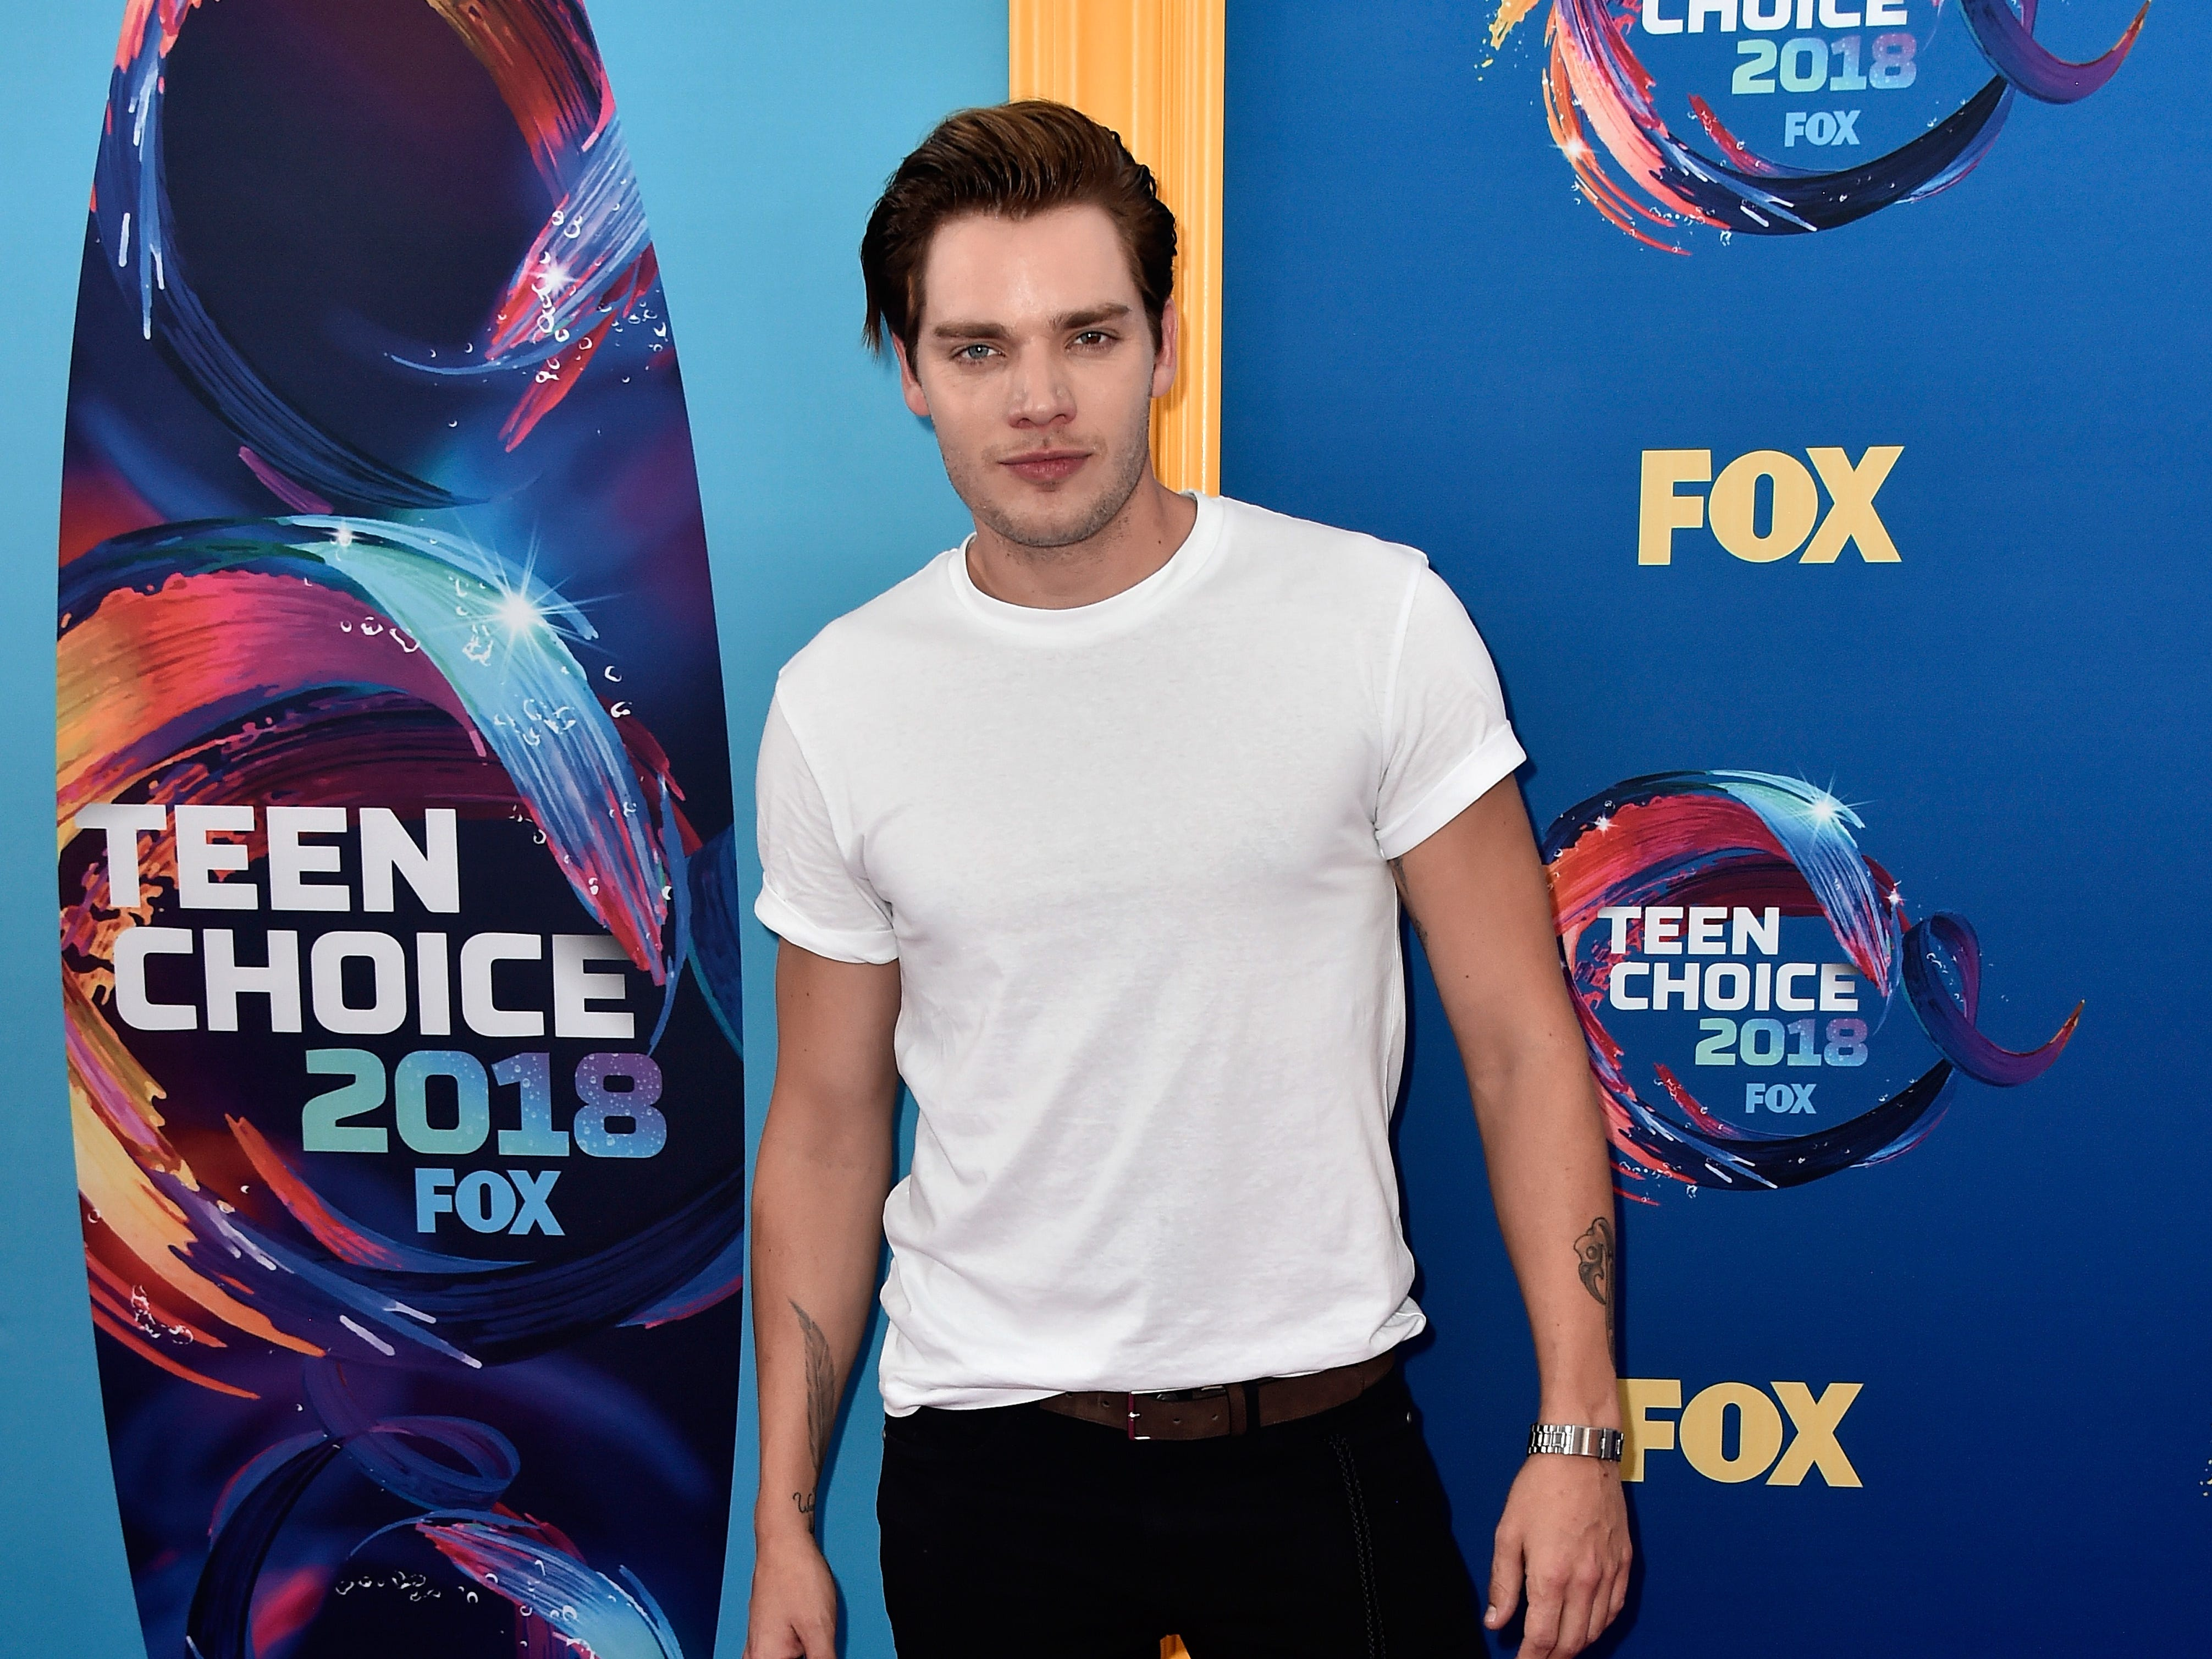 INGLEWOOD, CA - AUGUST 12:  Dominic Sherwood attends FOX's Teen Choice Awards at The Forum on August 12, 2018 in Inglewood, California.  (Photo by Frazer Harrison/Getty Images) ORG XMIT: 775199256 ORIG FILE ID: 1015792804